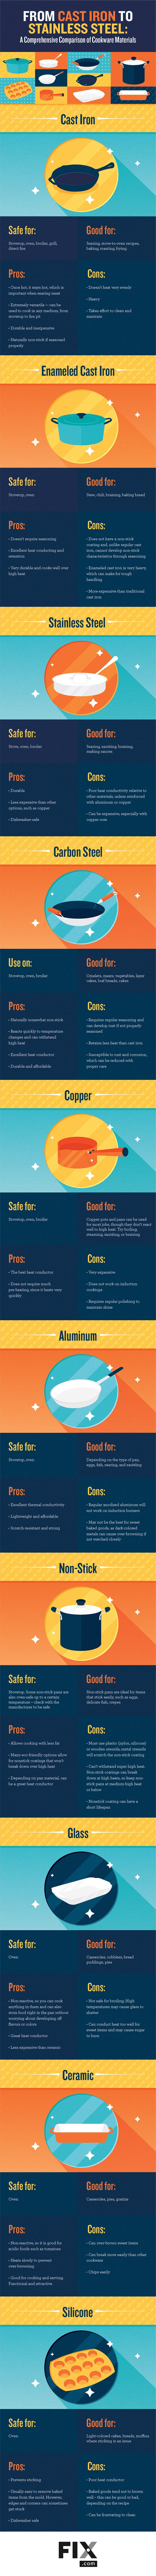 From Cast Iron to Stainless Steel A Comprehensive Comparison of Cookware Materials #infographic